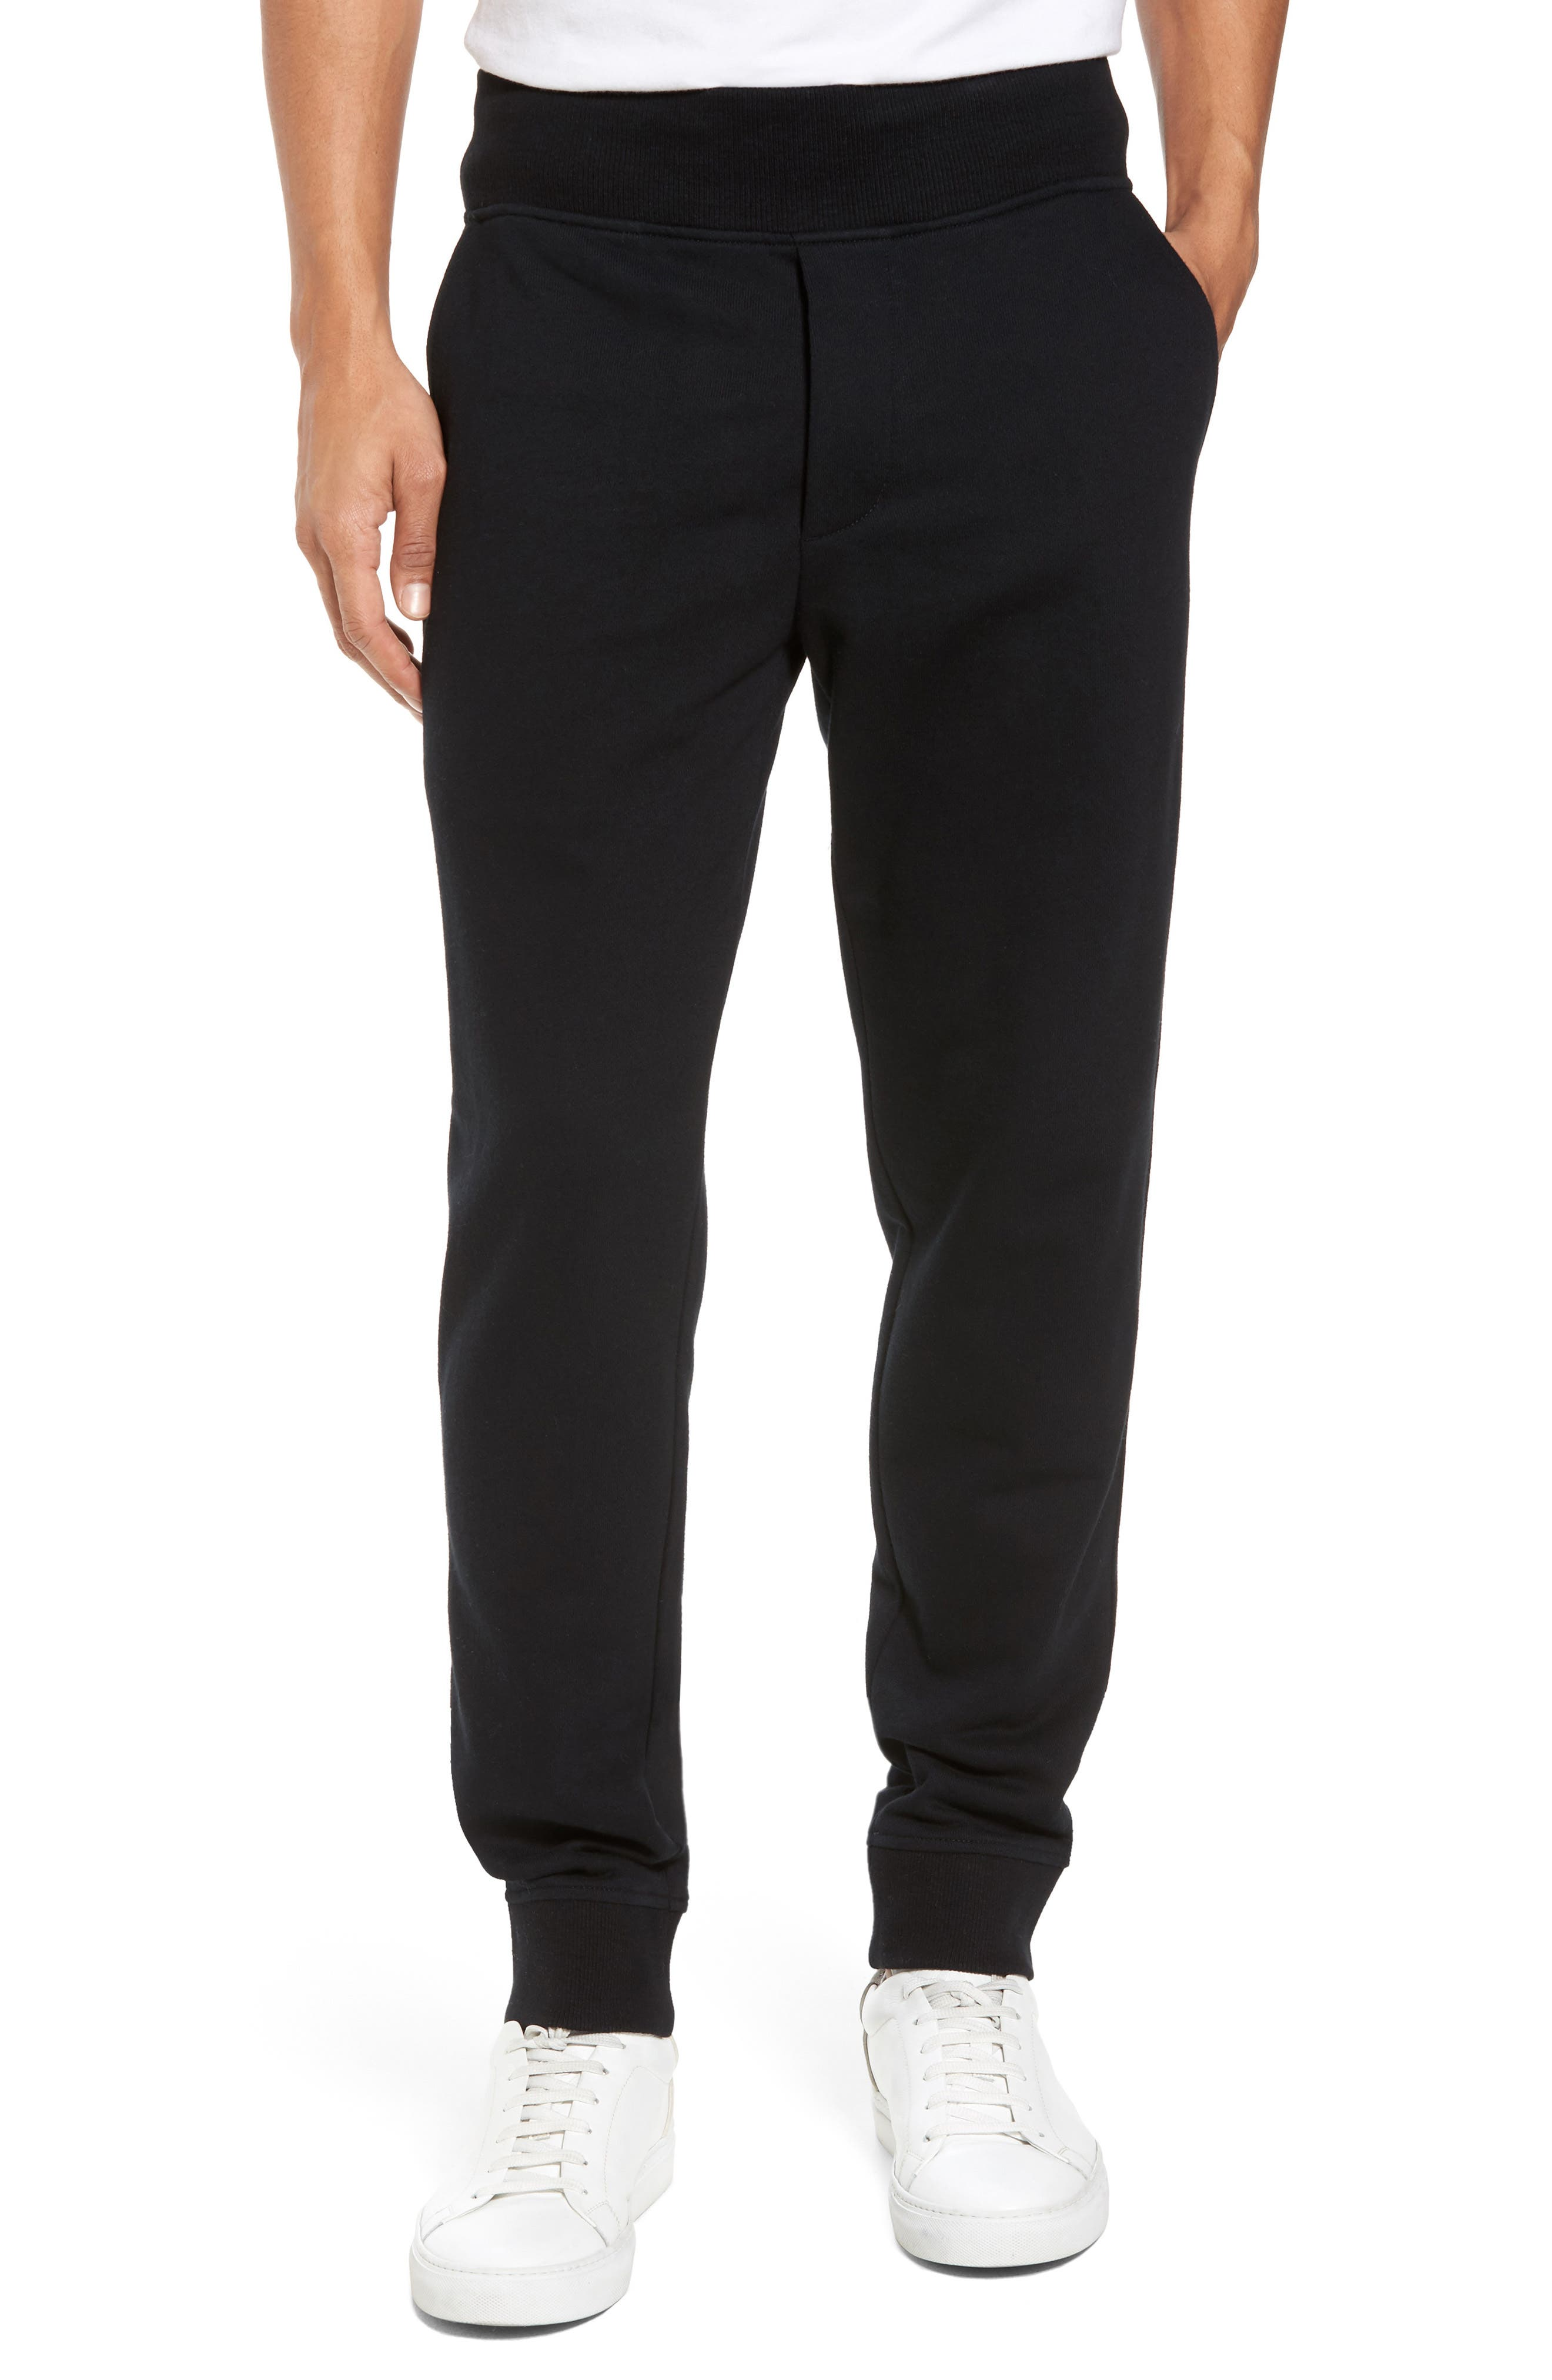 French Terry Regular Fit Sweatpants,                             Main thumbnail 1, color,                             Black